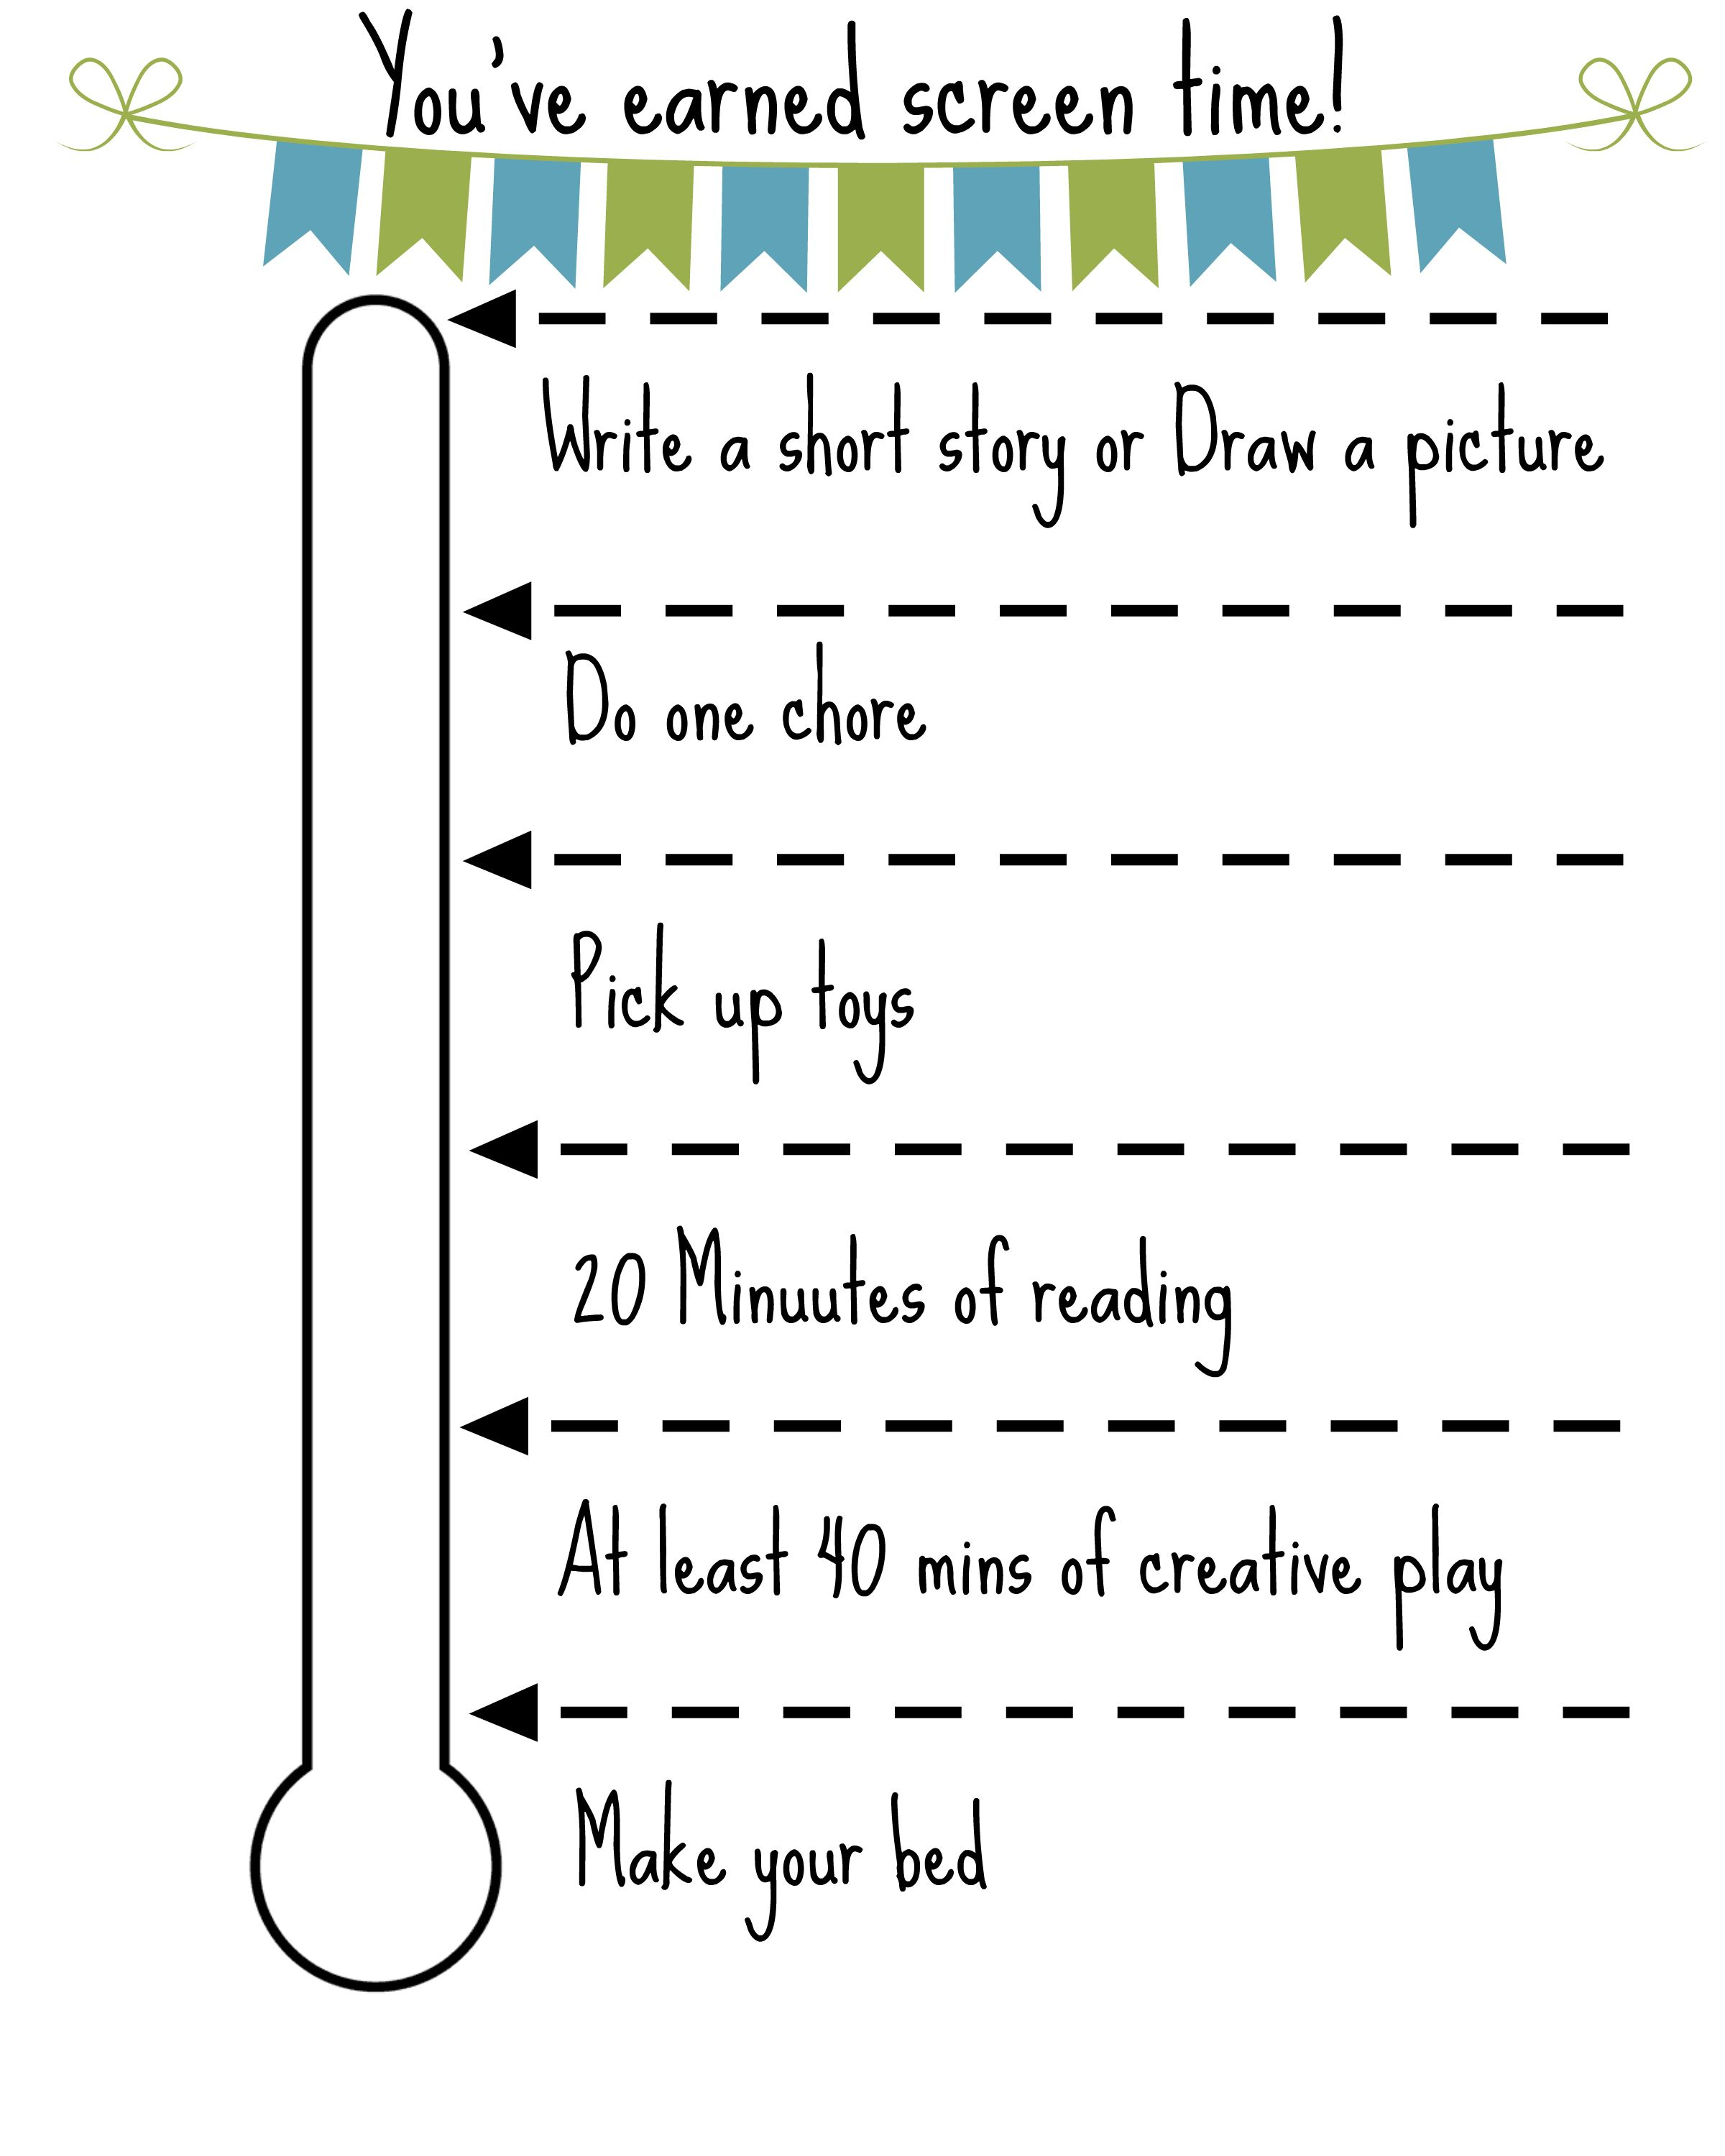 Free Printable Screen Time Chart  Free Printable Screens And Free